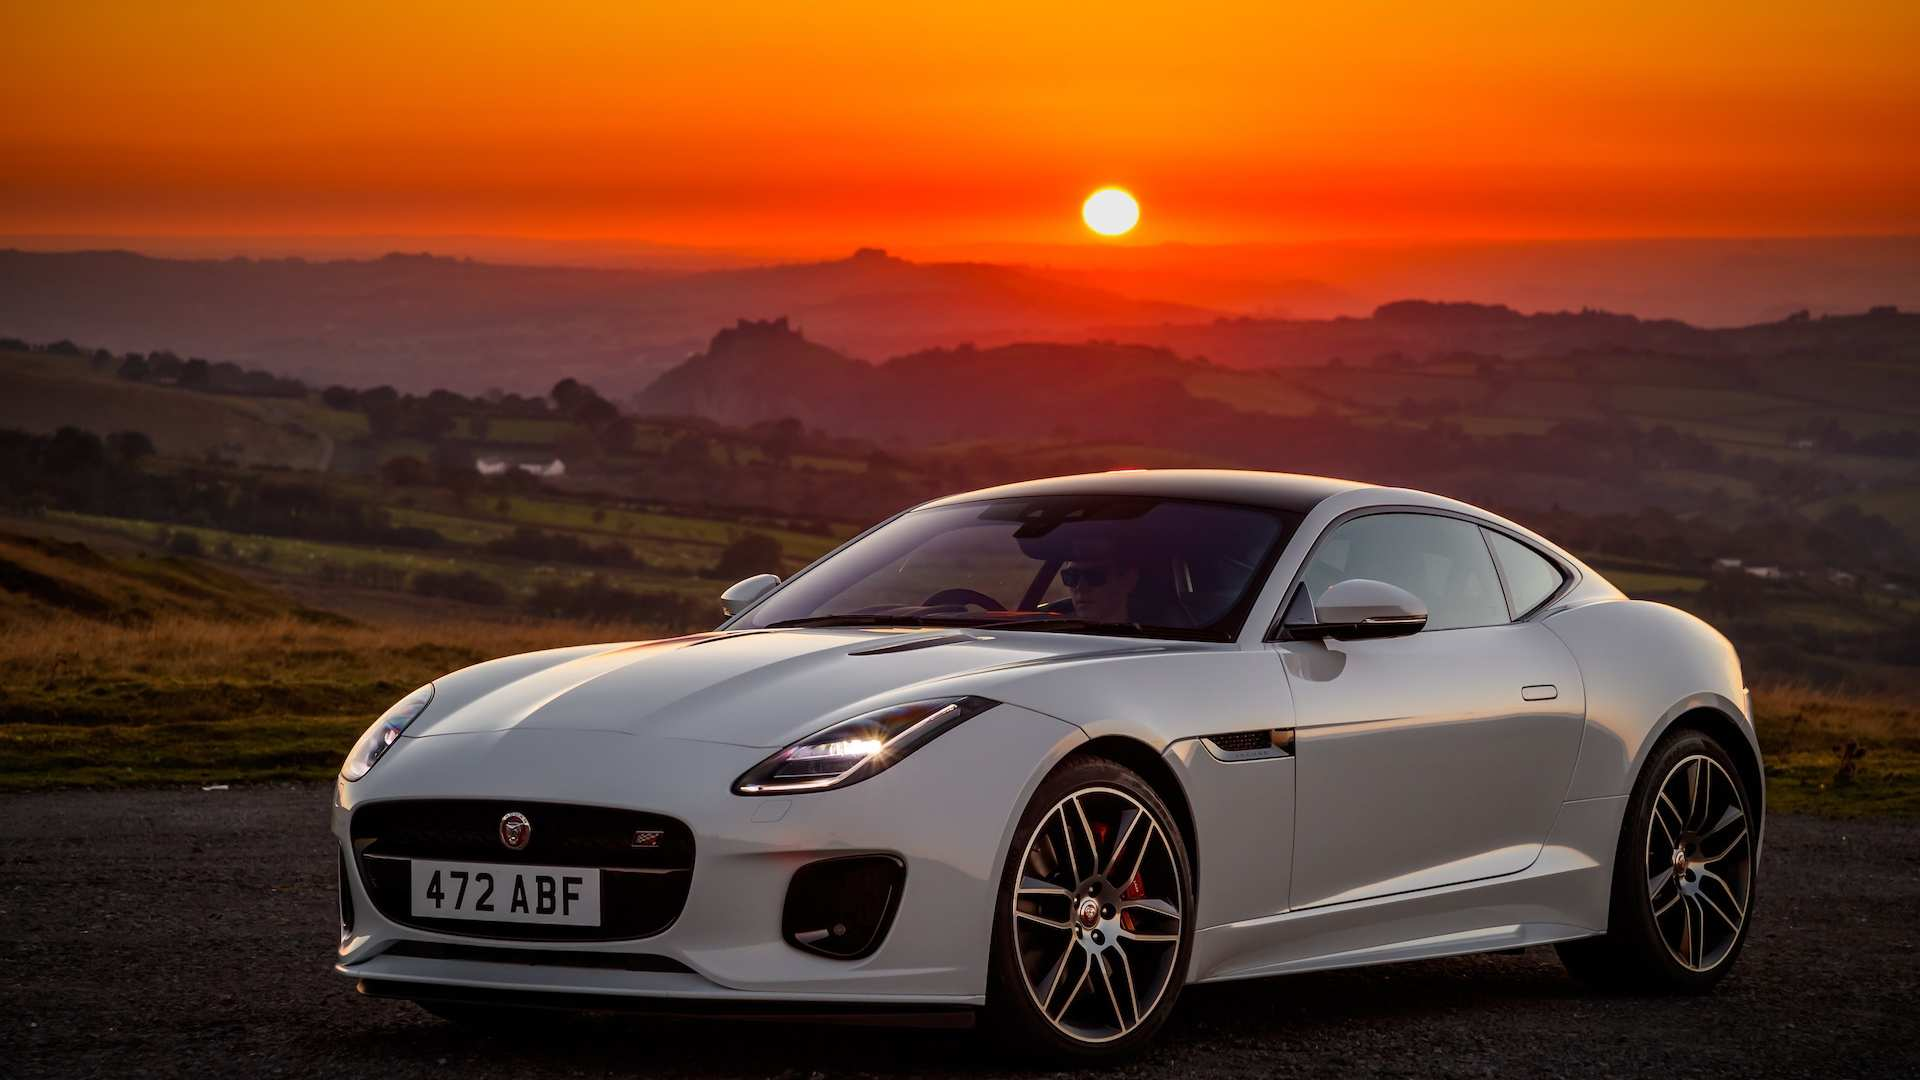 33 New 2020 Jaguar F Type Convertible Spy Shoot with 2020 Jaguar F Type Convertible